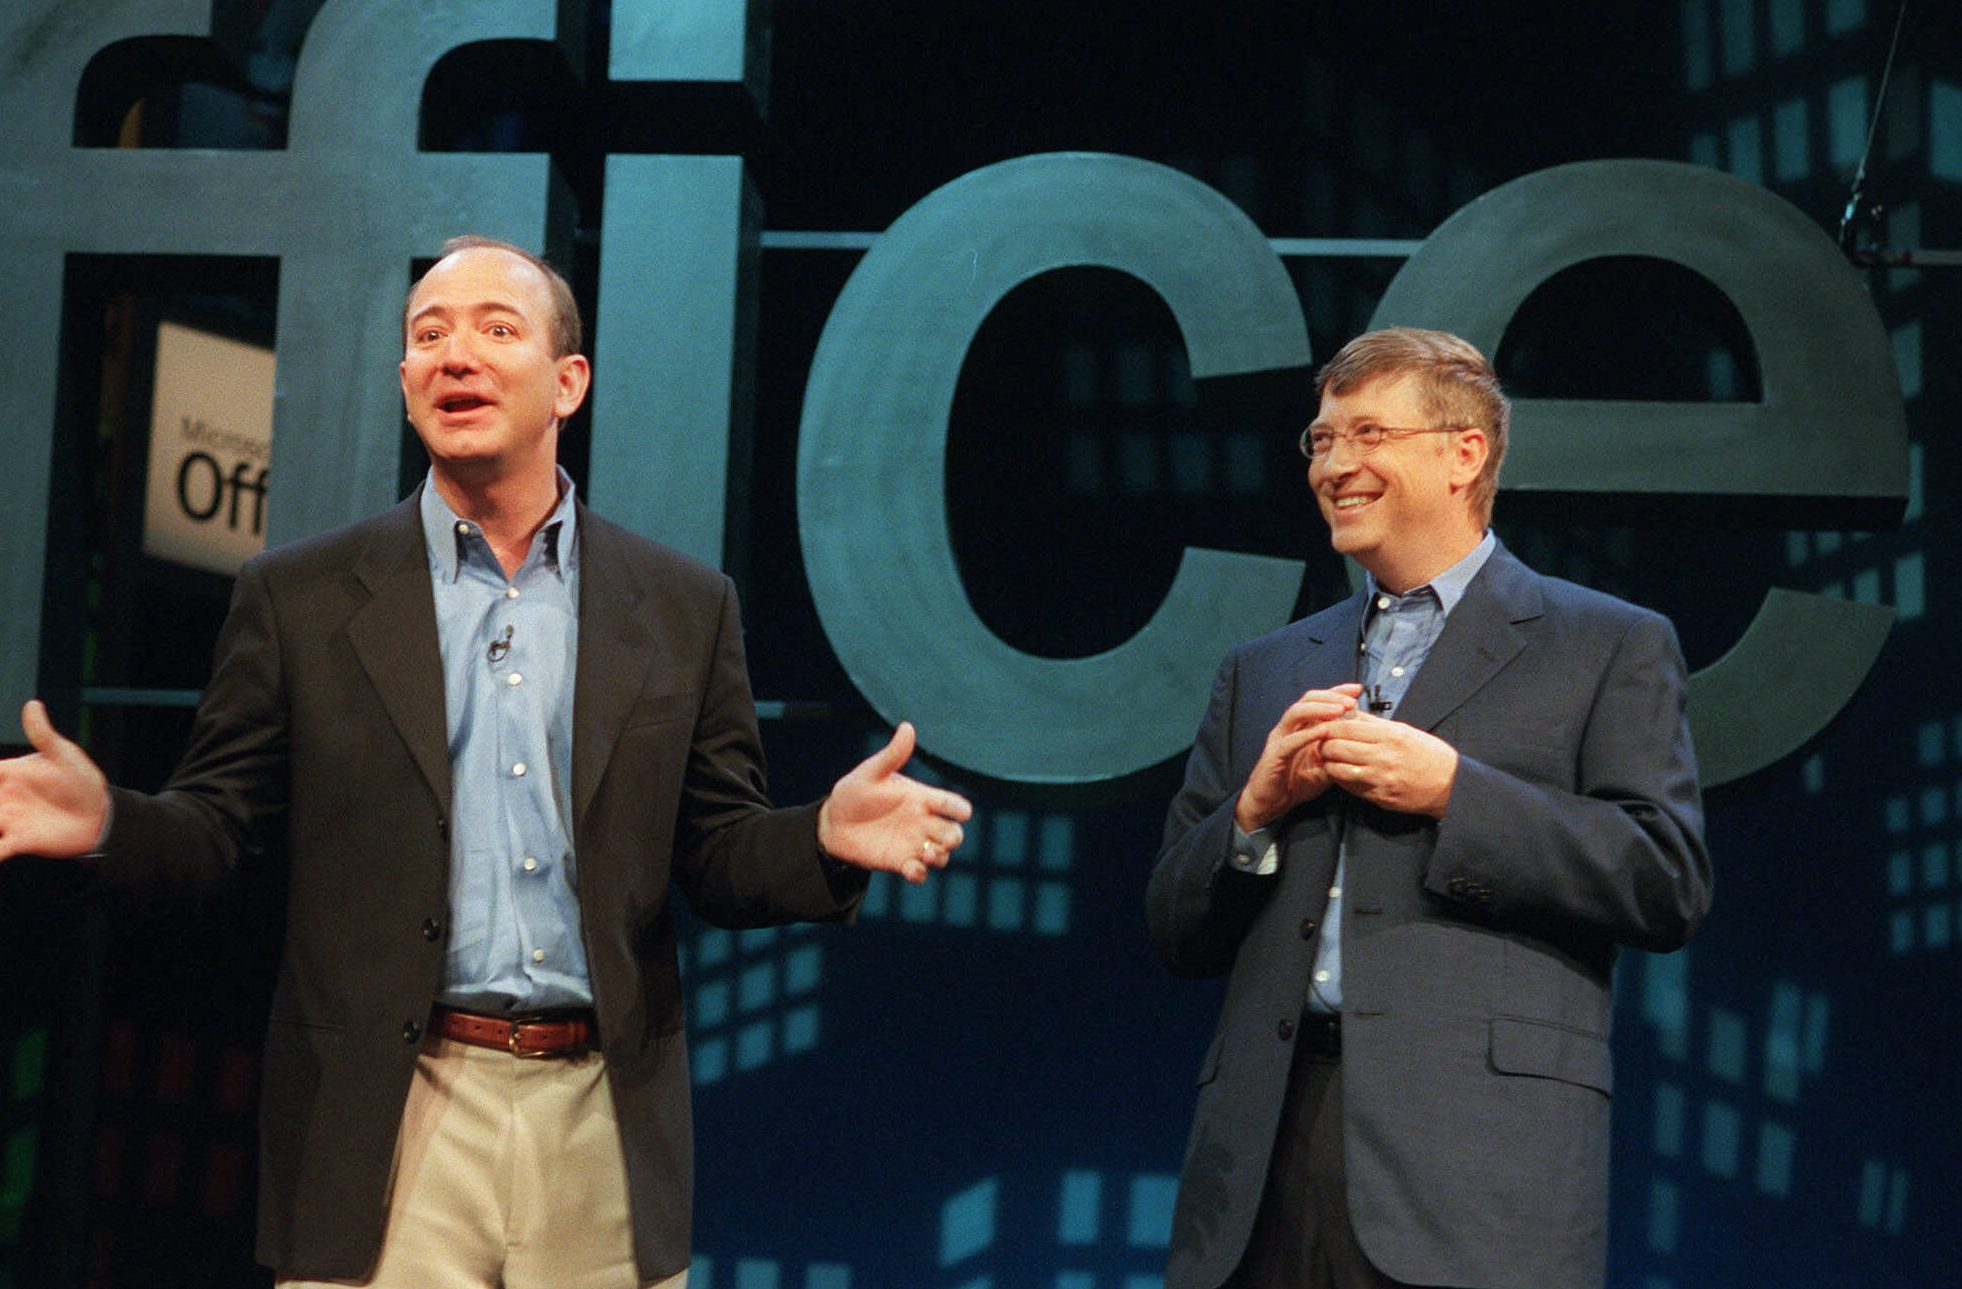 Jeff Bezos, founder and CEO of Amazon.com, left, meets with Bill Gates, Microsoft Corp. chairman and chief software architect, at a New York news conference to launch Microsoft's new software, Office XP, Thursday, May 31, 2001. Gates said Office XP will improve worker productivity, but he acknowledged that there was room for improvement to the product.